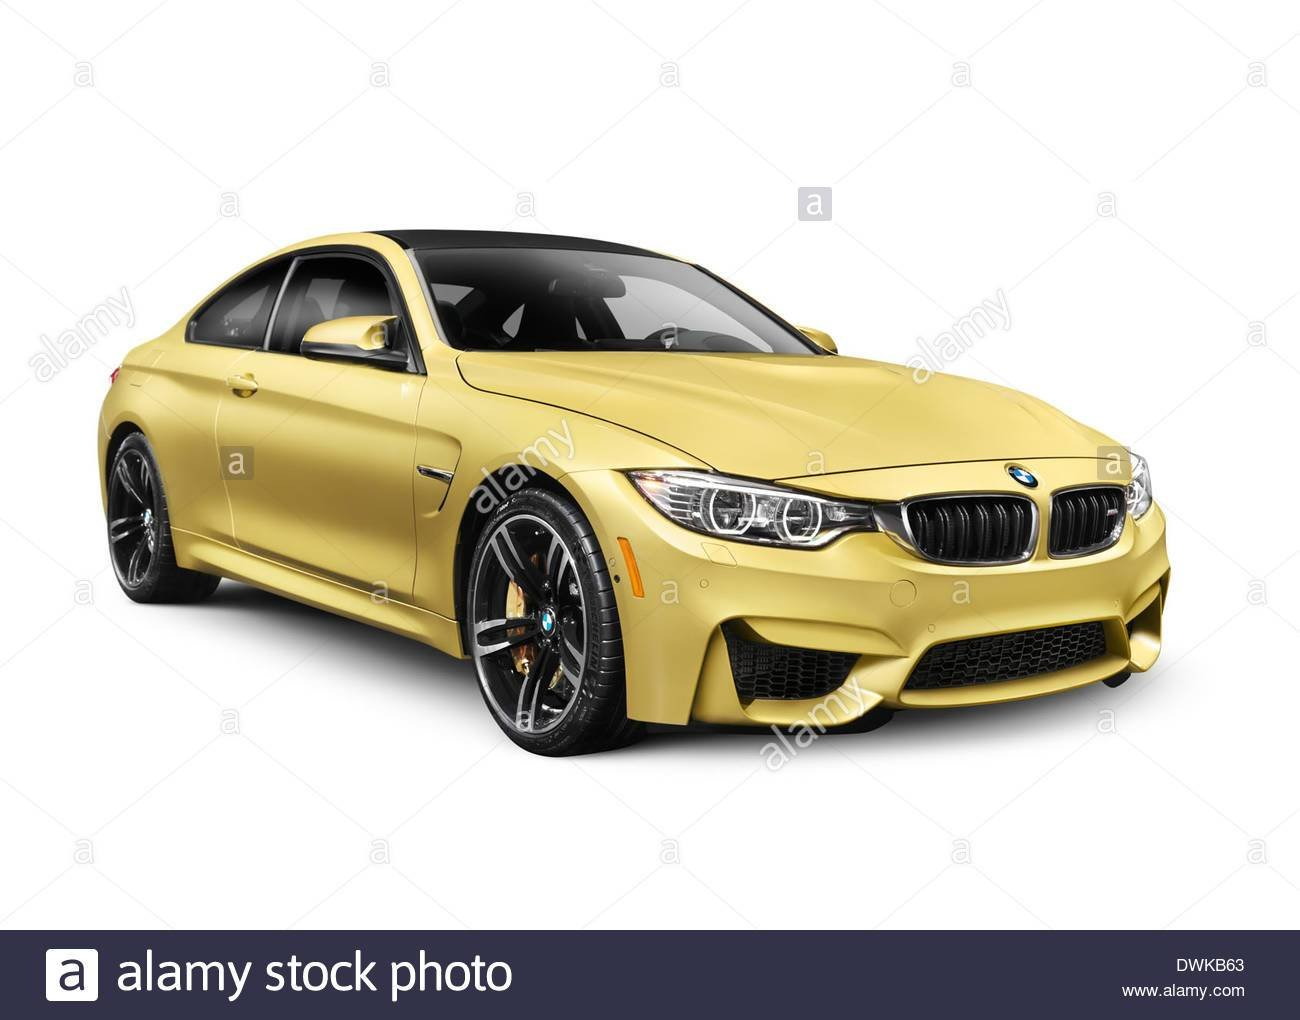 Latest Gold 2015 Bmw M4 Coupe Performance Car Isolated On White Free Download